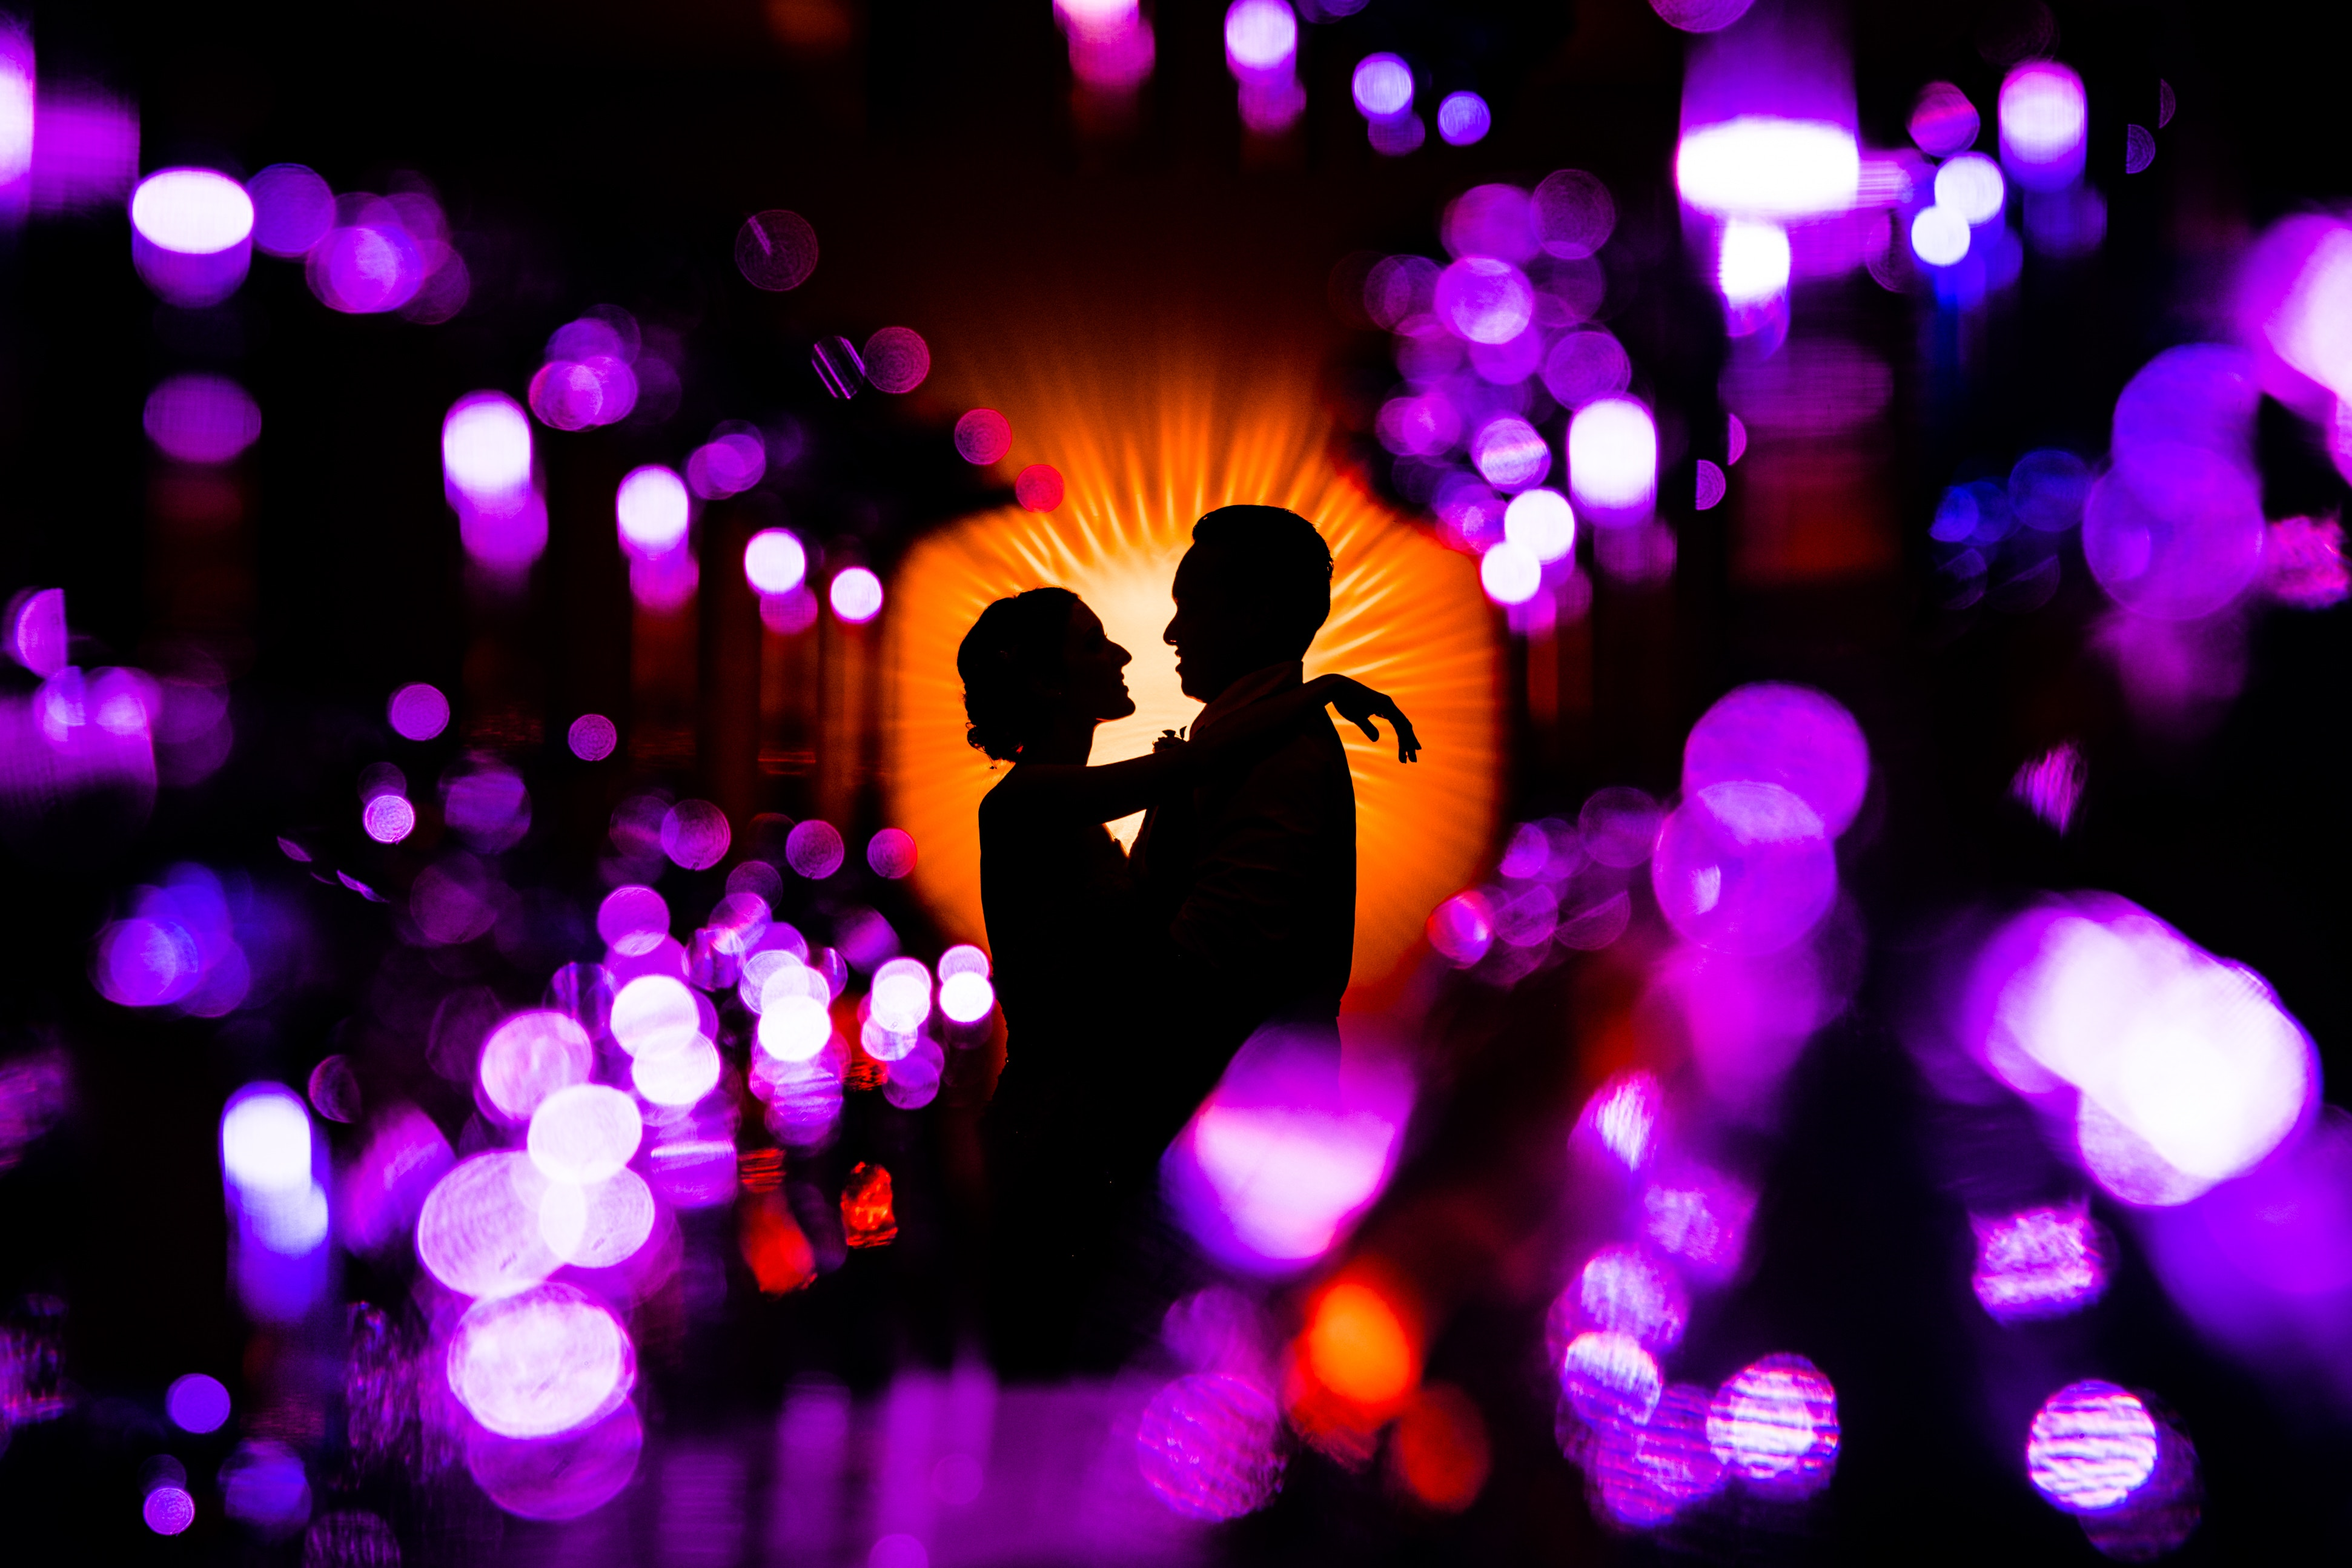 72755 download wallpaper Couple, Pair, Lovers, Embrace, To Cuddle, Hug, Romance, Love, Brilliant, Glamour screensavers and pictures for free